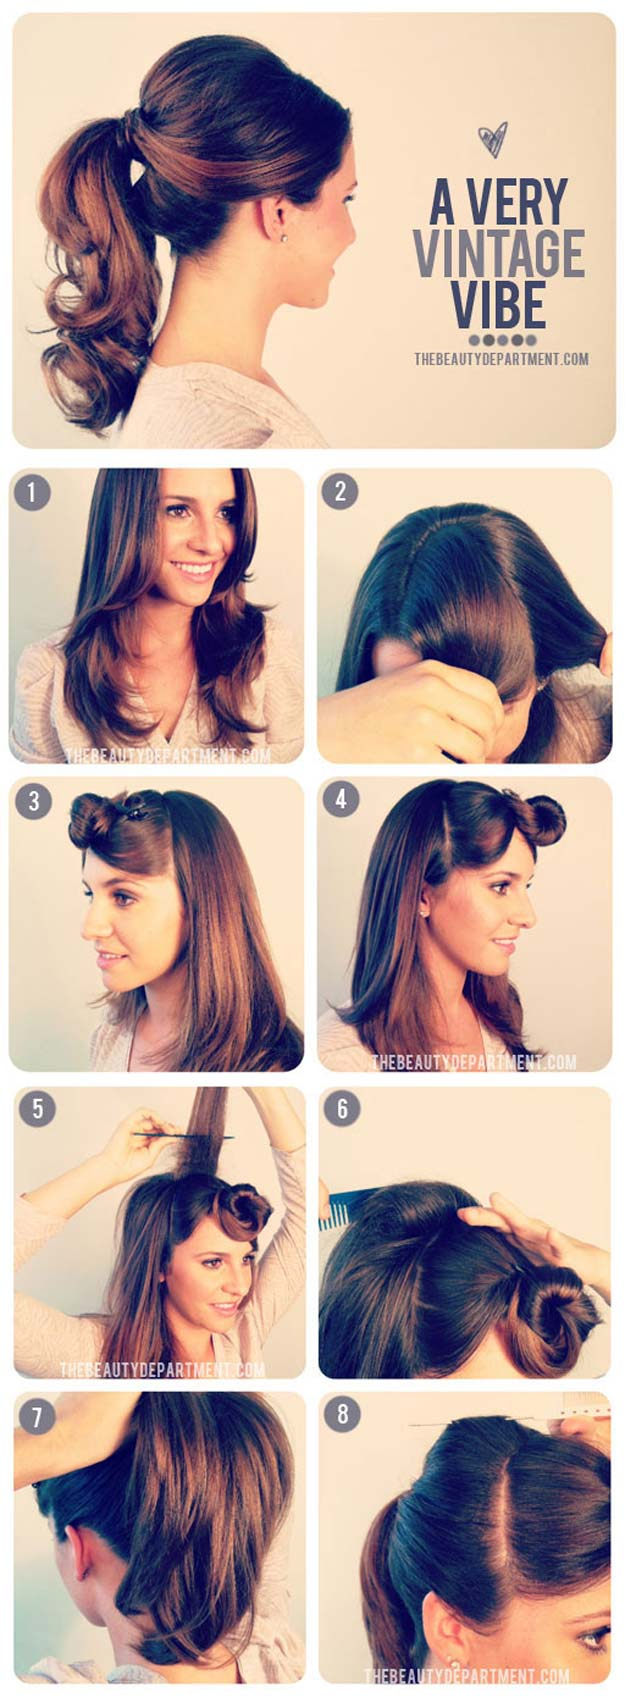 17 Quick And Easy Hairstyle For Busy Women